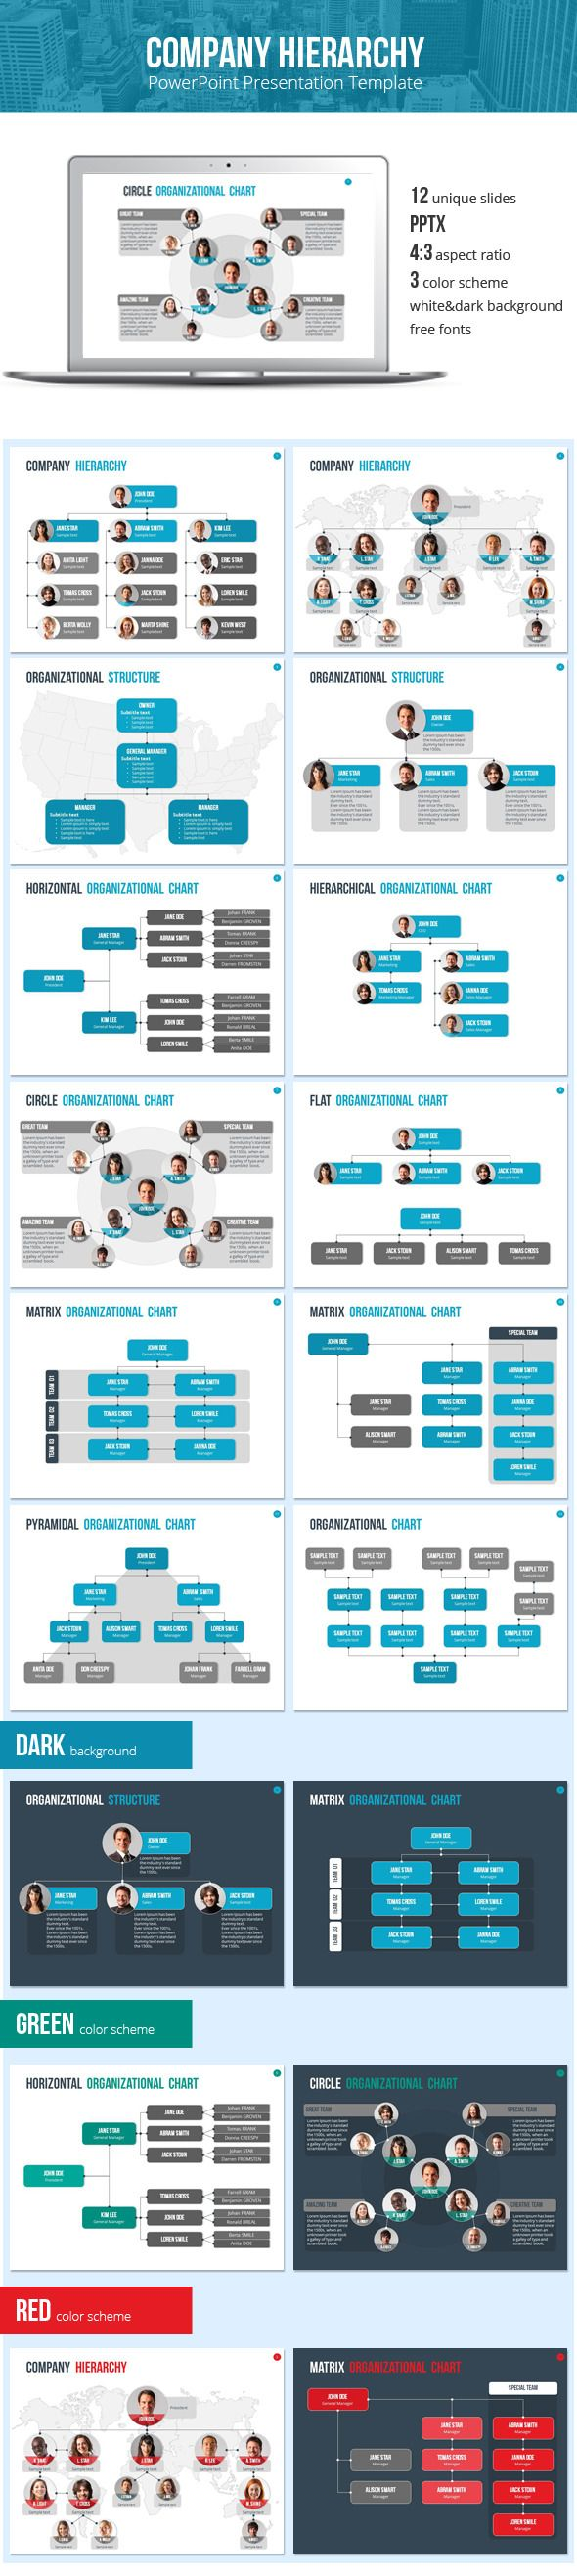 Organizational chart and hierarchy template cha cha infogrficos organizational chart and hierarchy template business powerpoint templates toneelgroepblik Images